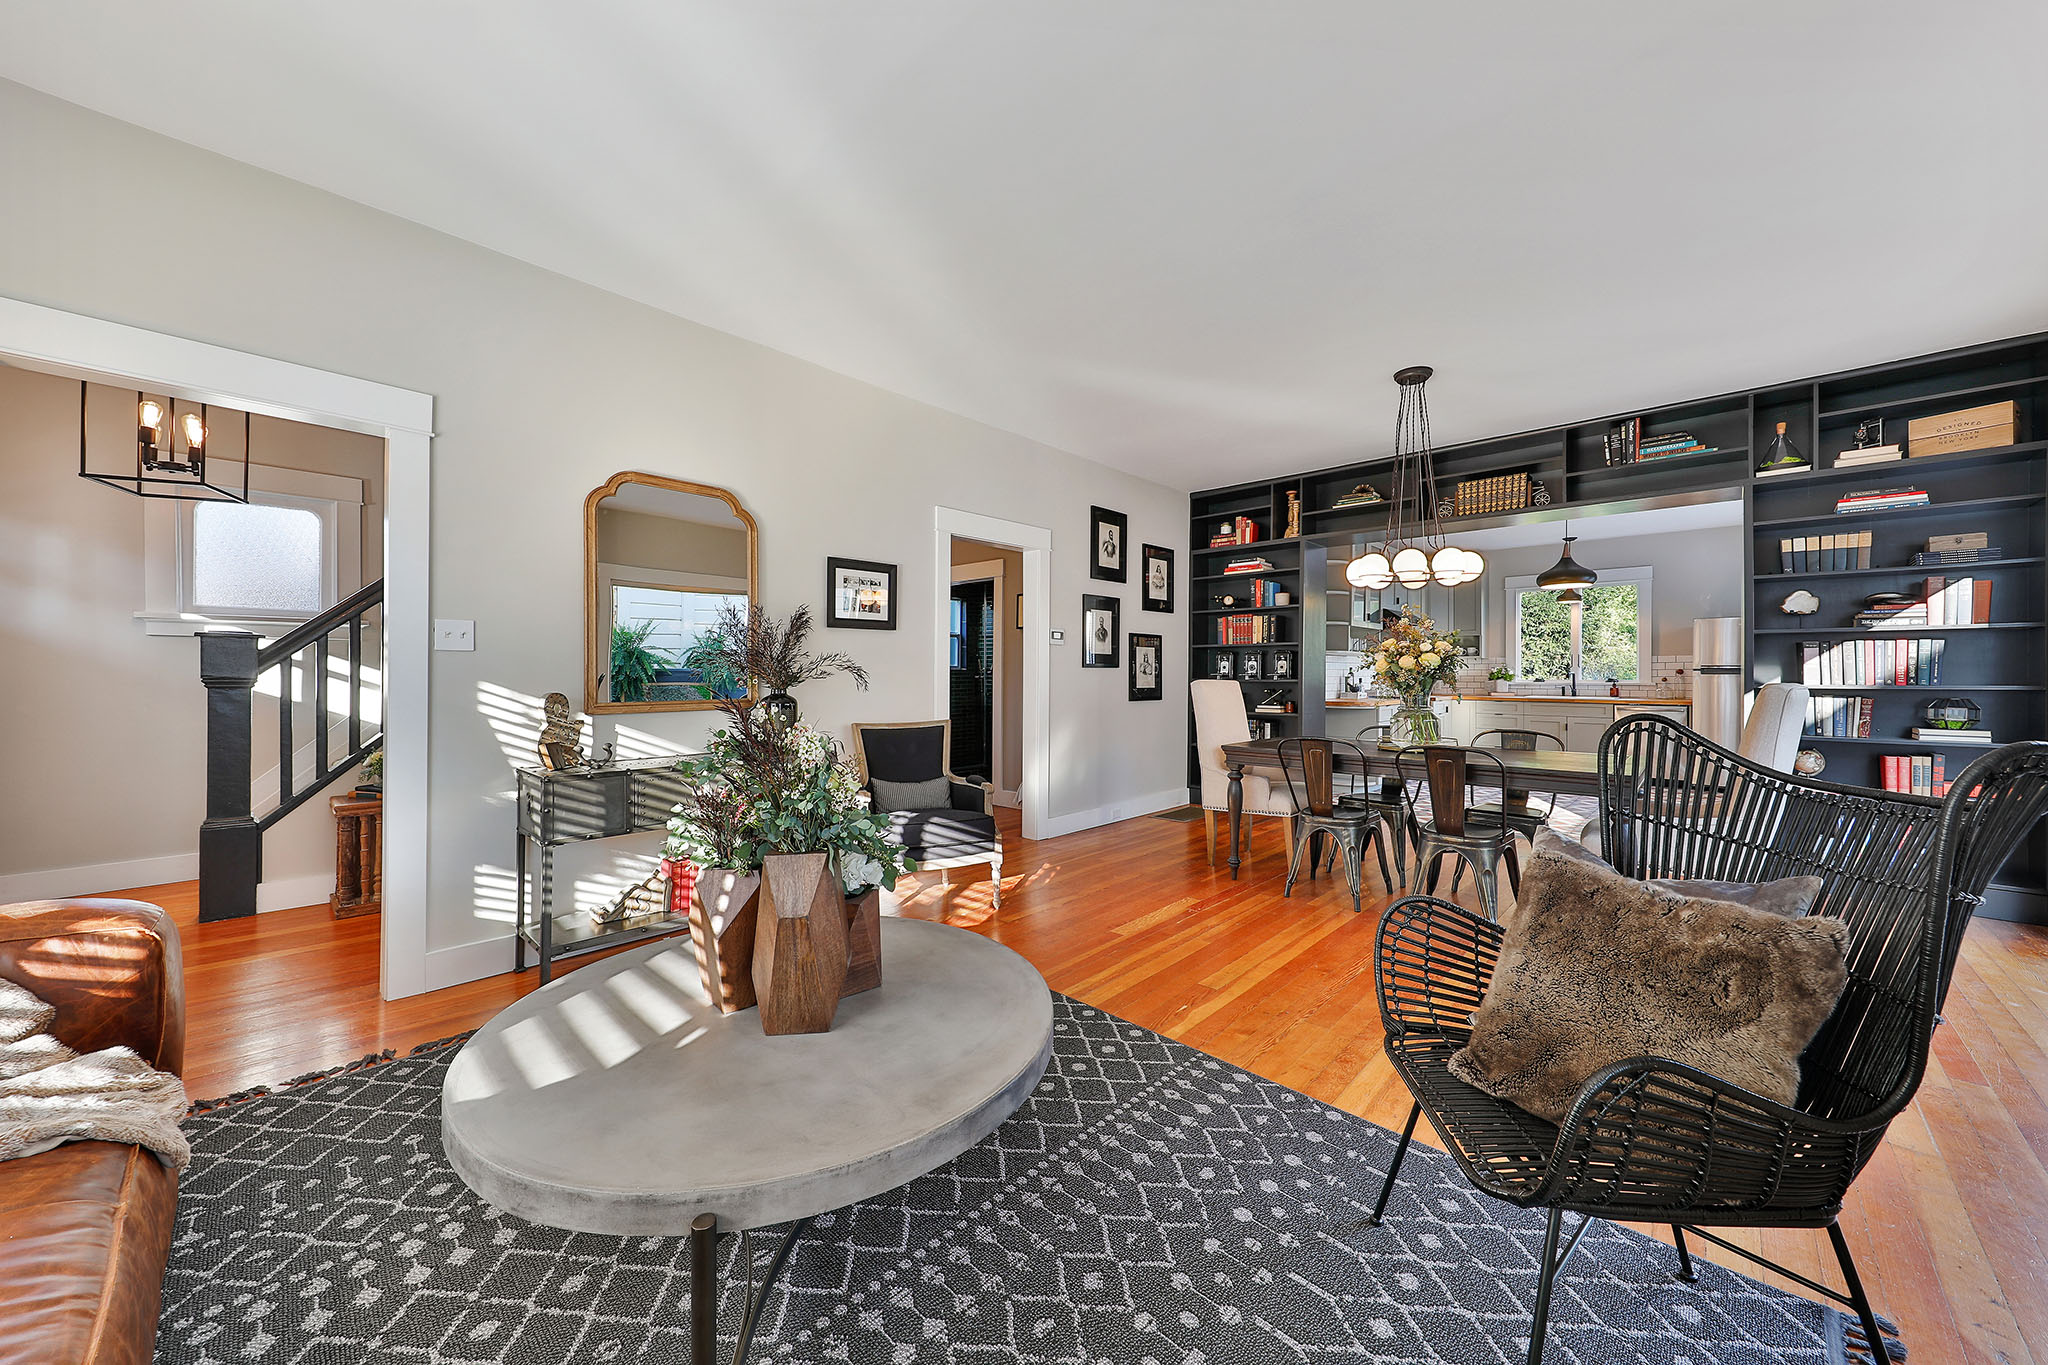 San Francisco Home - dining room and living room